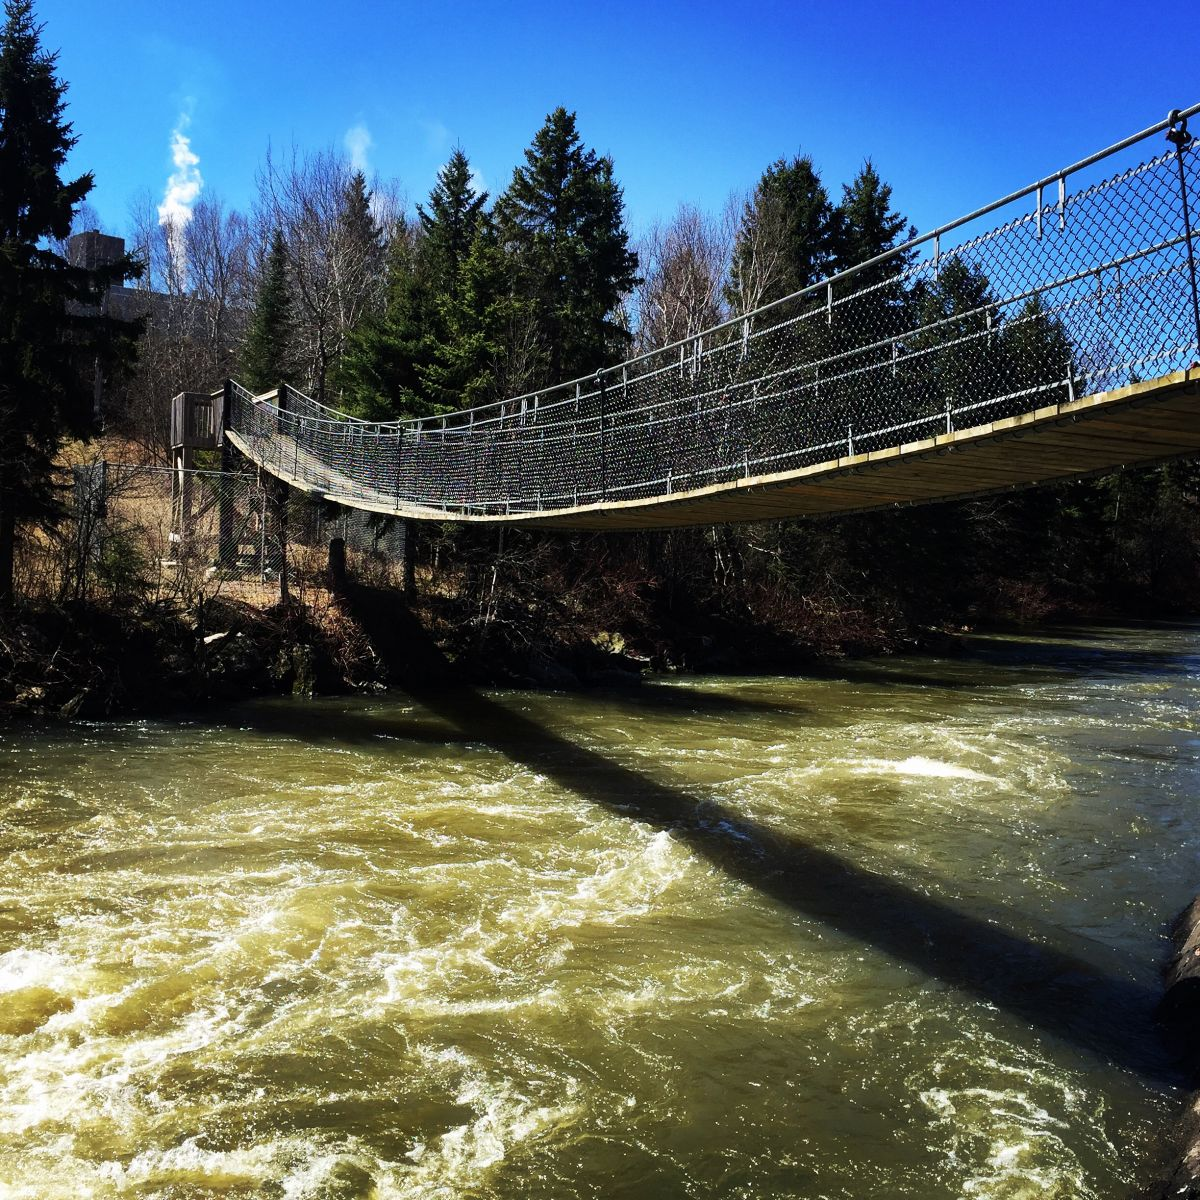 The Roy Wilson Suspension Bridge near Dryden, Ontario